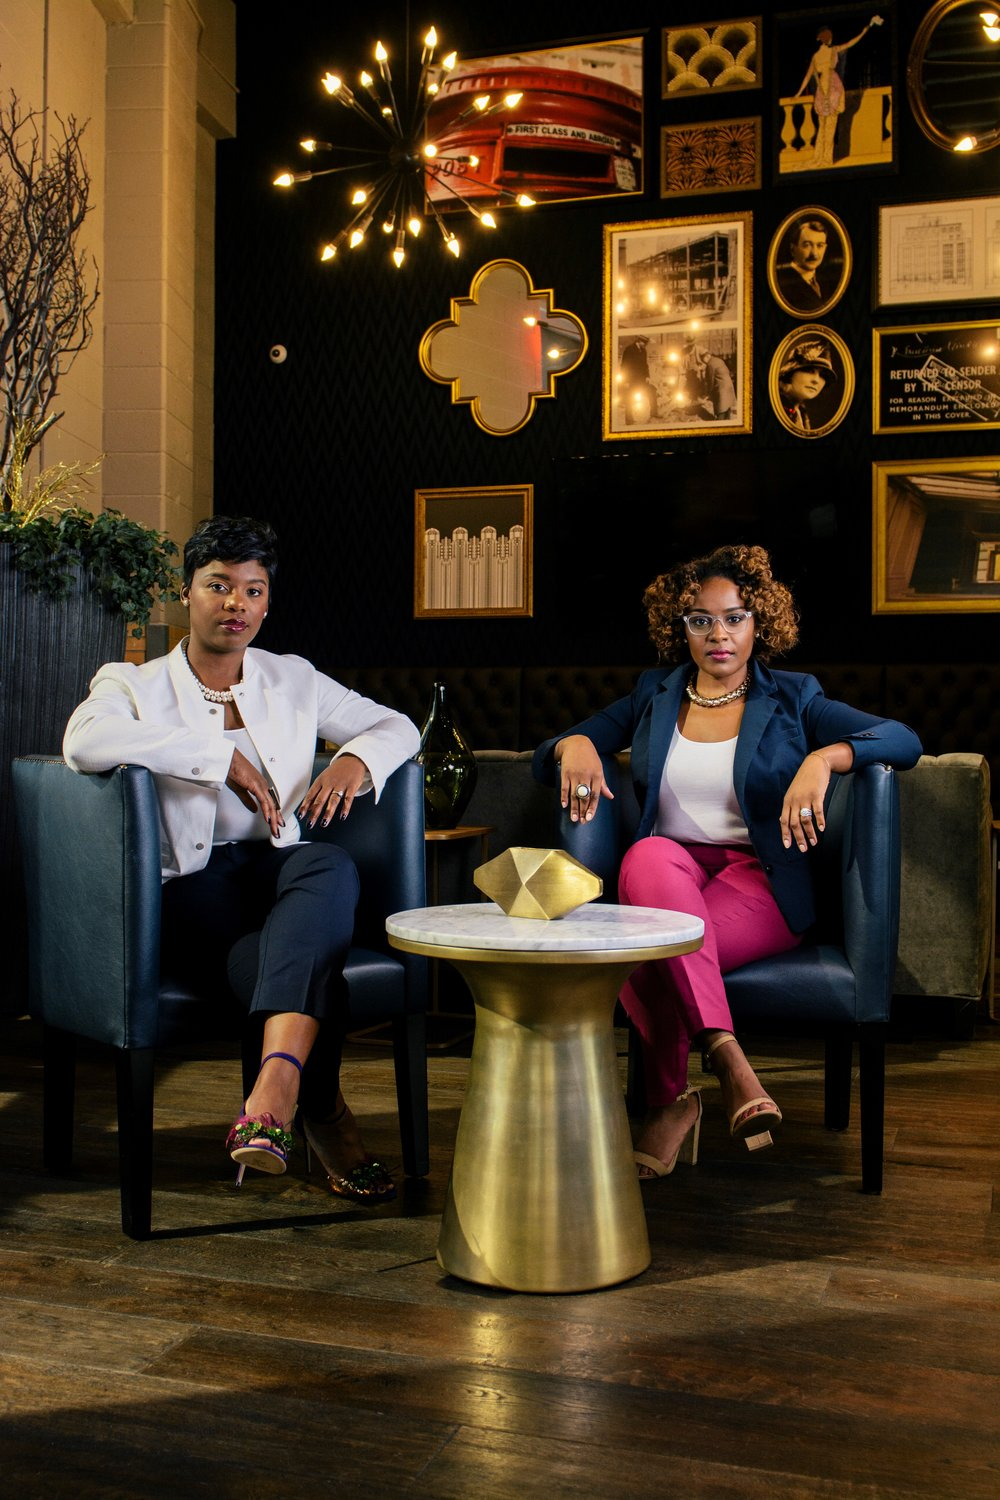 - Shawntera and Camille are entrepreneurs committed to empowering and advancing women business owners. They both own and operate businesses and understand the importance of being seen and invested in.The two found themselves disheartened by the lack of representation of Black women business owners in local and national publications and platforms. This started the journey that birthed Fearless Commerce and there is no turning back. Shawntera and Camille are committed to sharing the voices, the experiences, the stories and the images of successful Black women business owners.